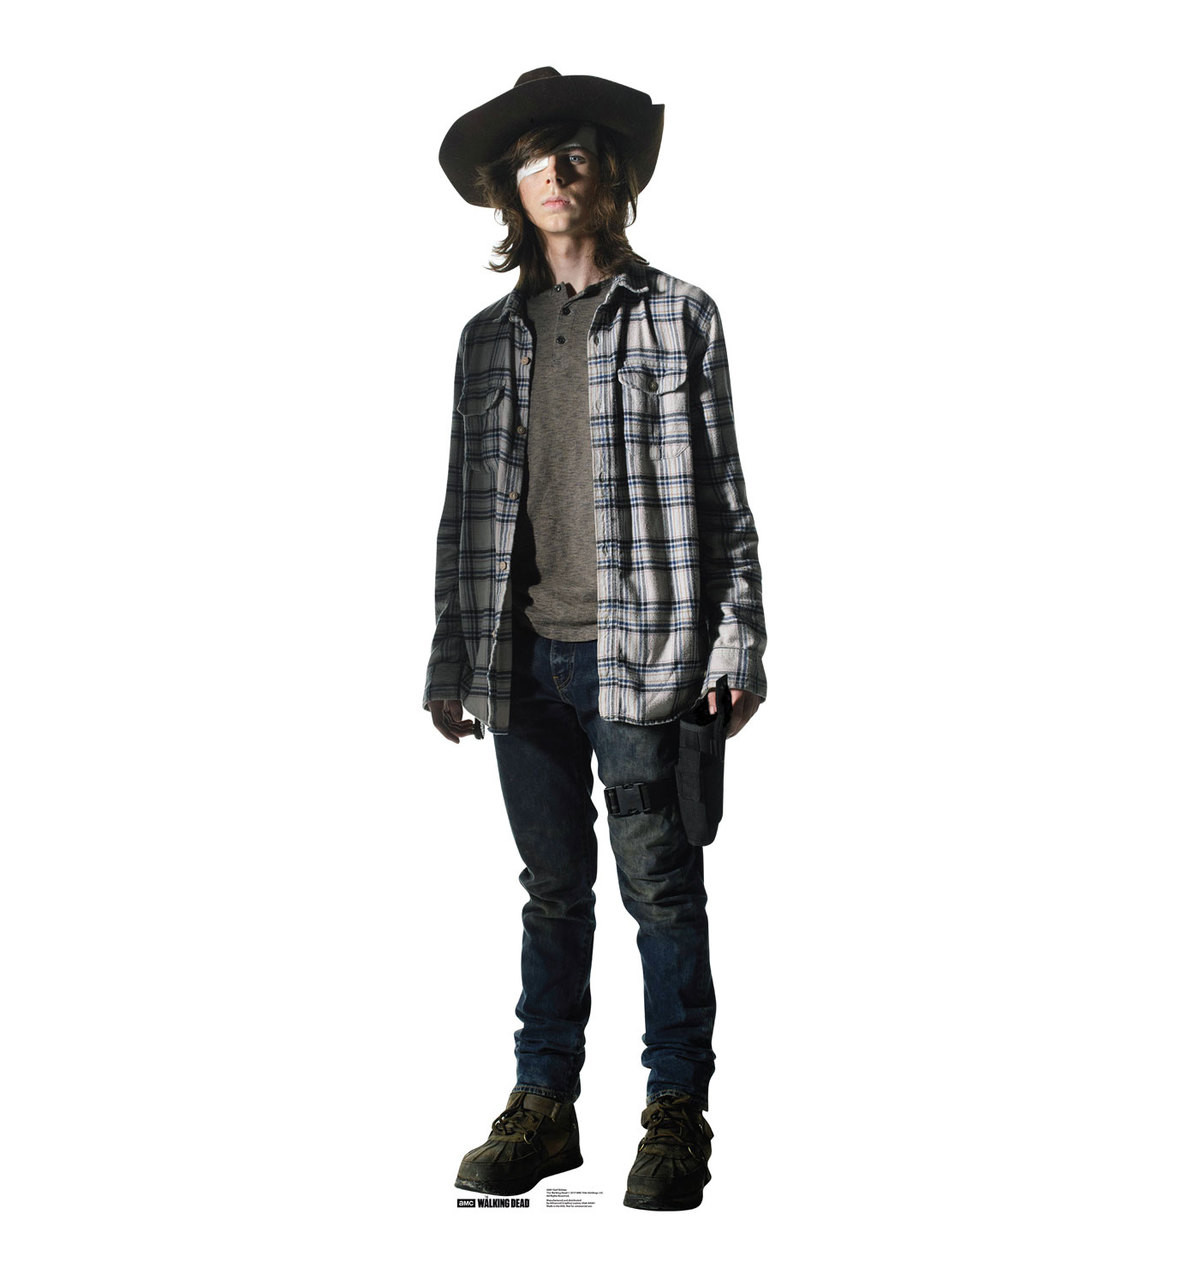 Carl Grimes - The Walking Dead - Cardboard Cutout 2381